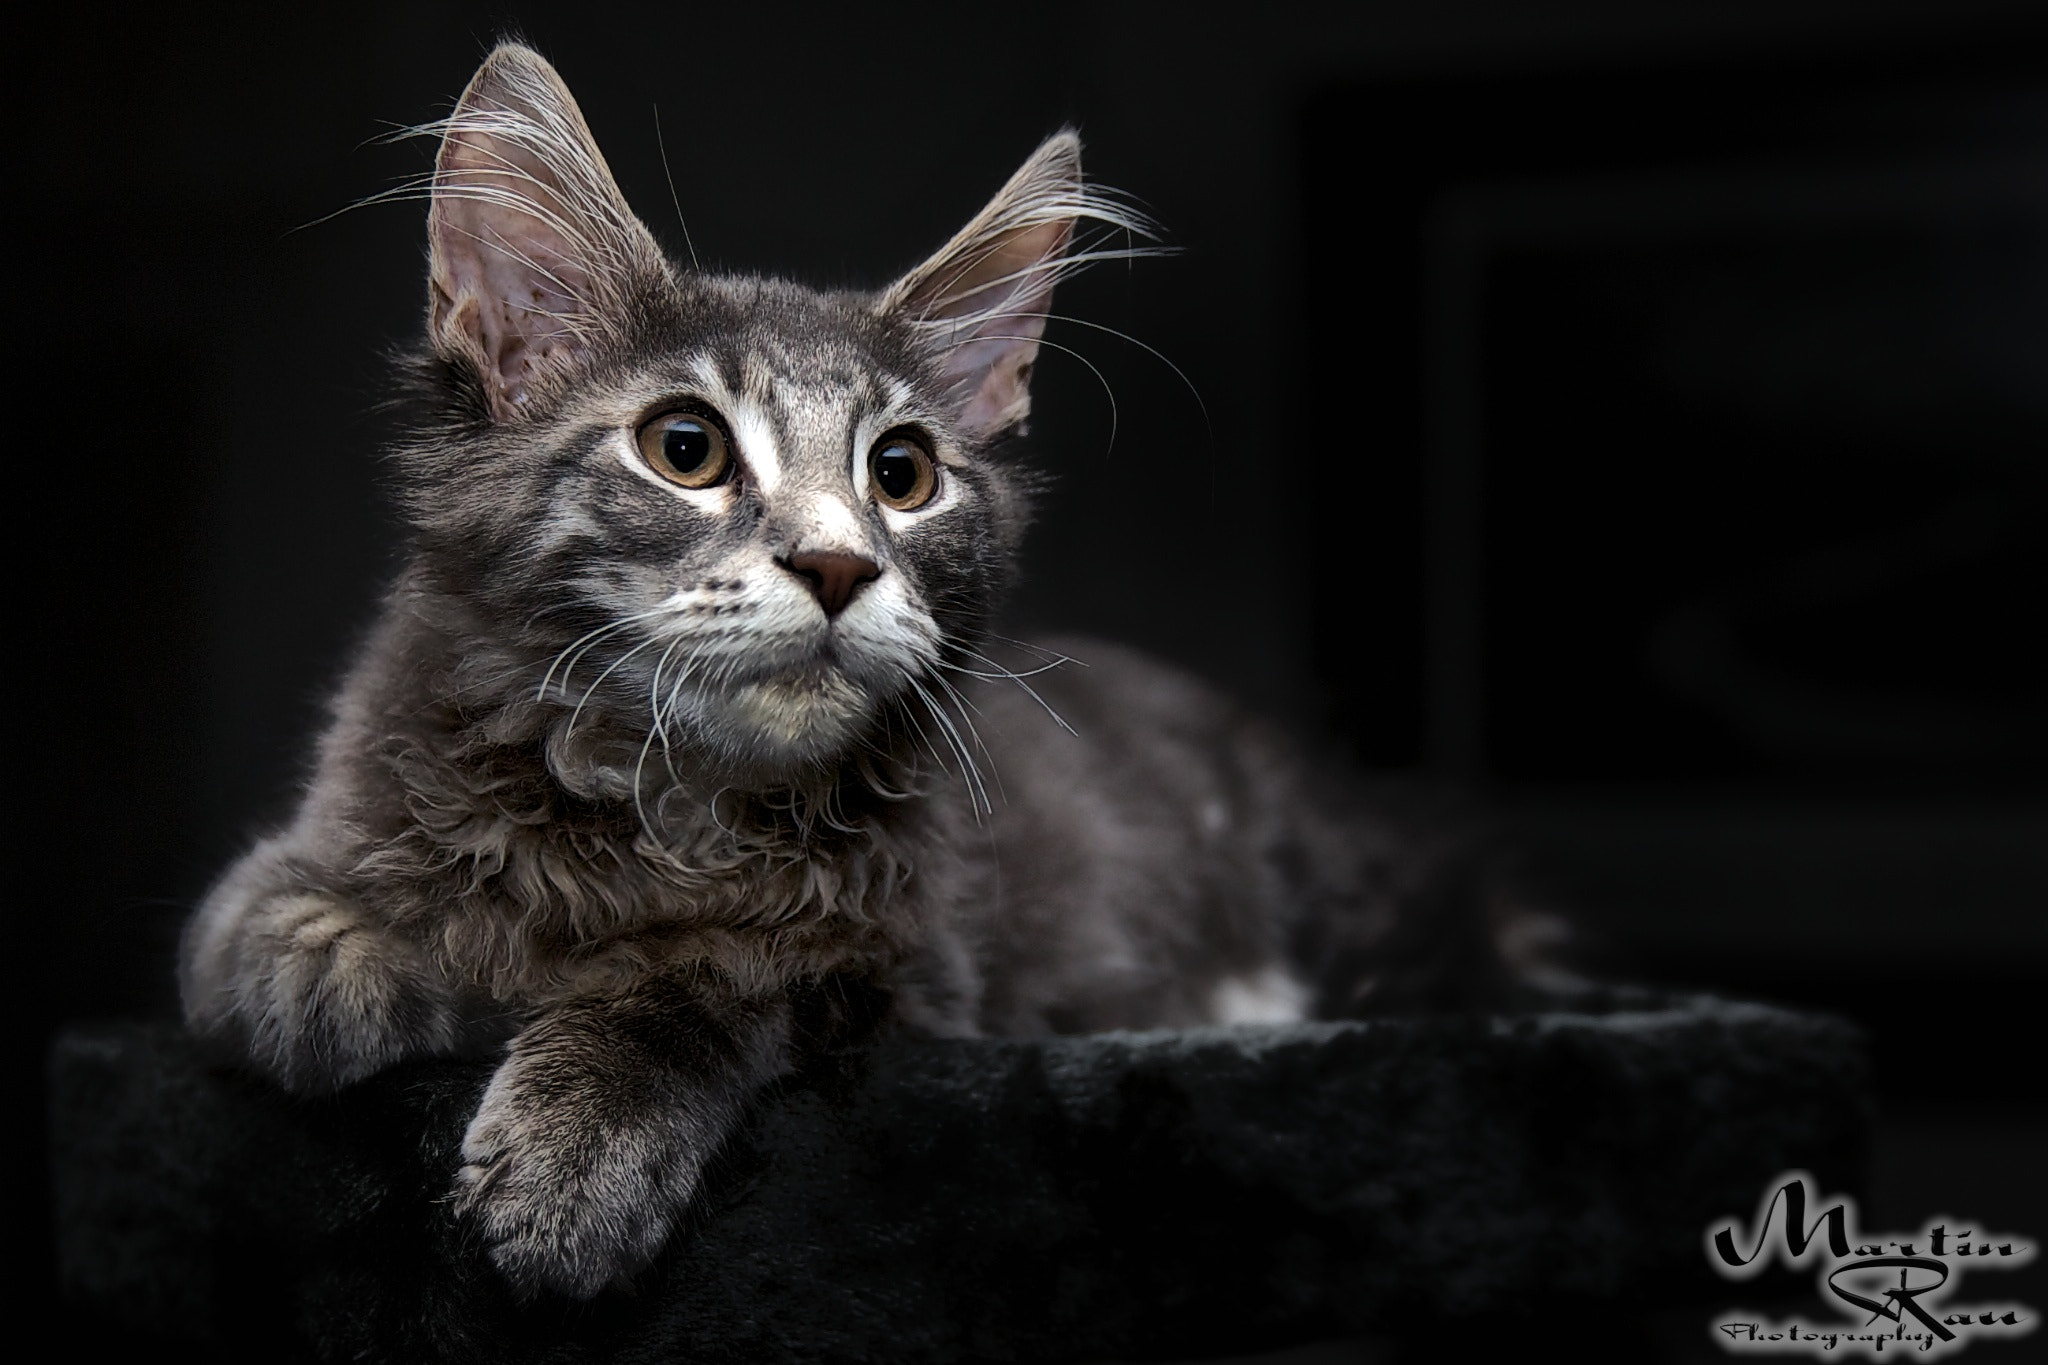 Photograph Maine Coon Kitten by Martin Rau on 500px